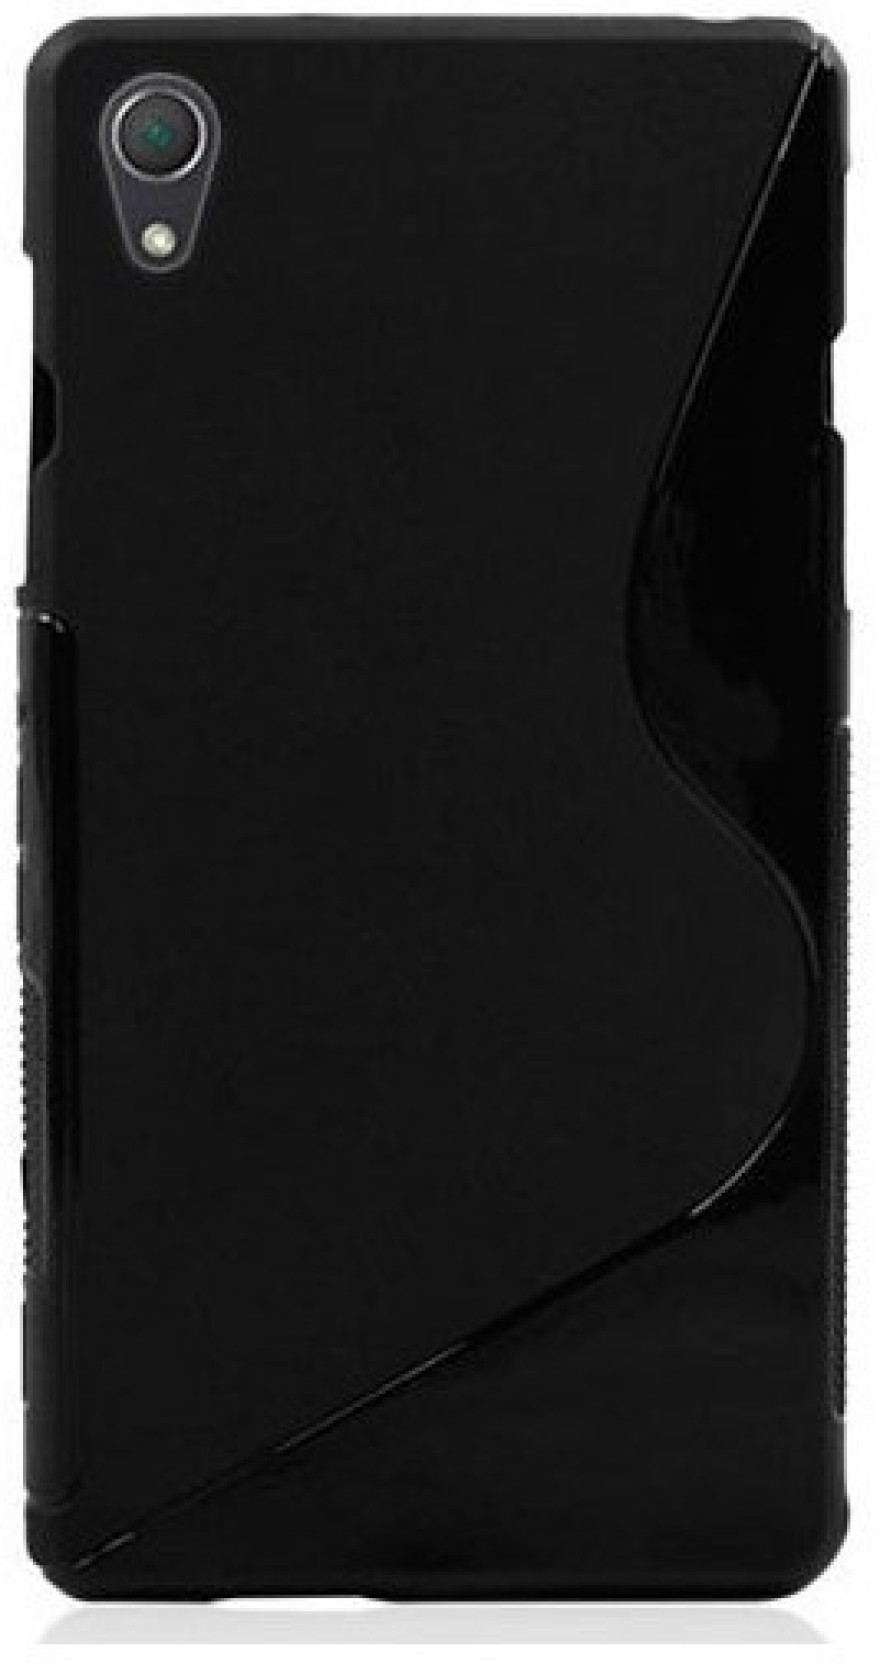 competitive price 33edd 271b7 Stylish Back Cover for Sony Xperia T2 Ultra Dual